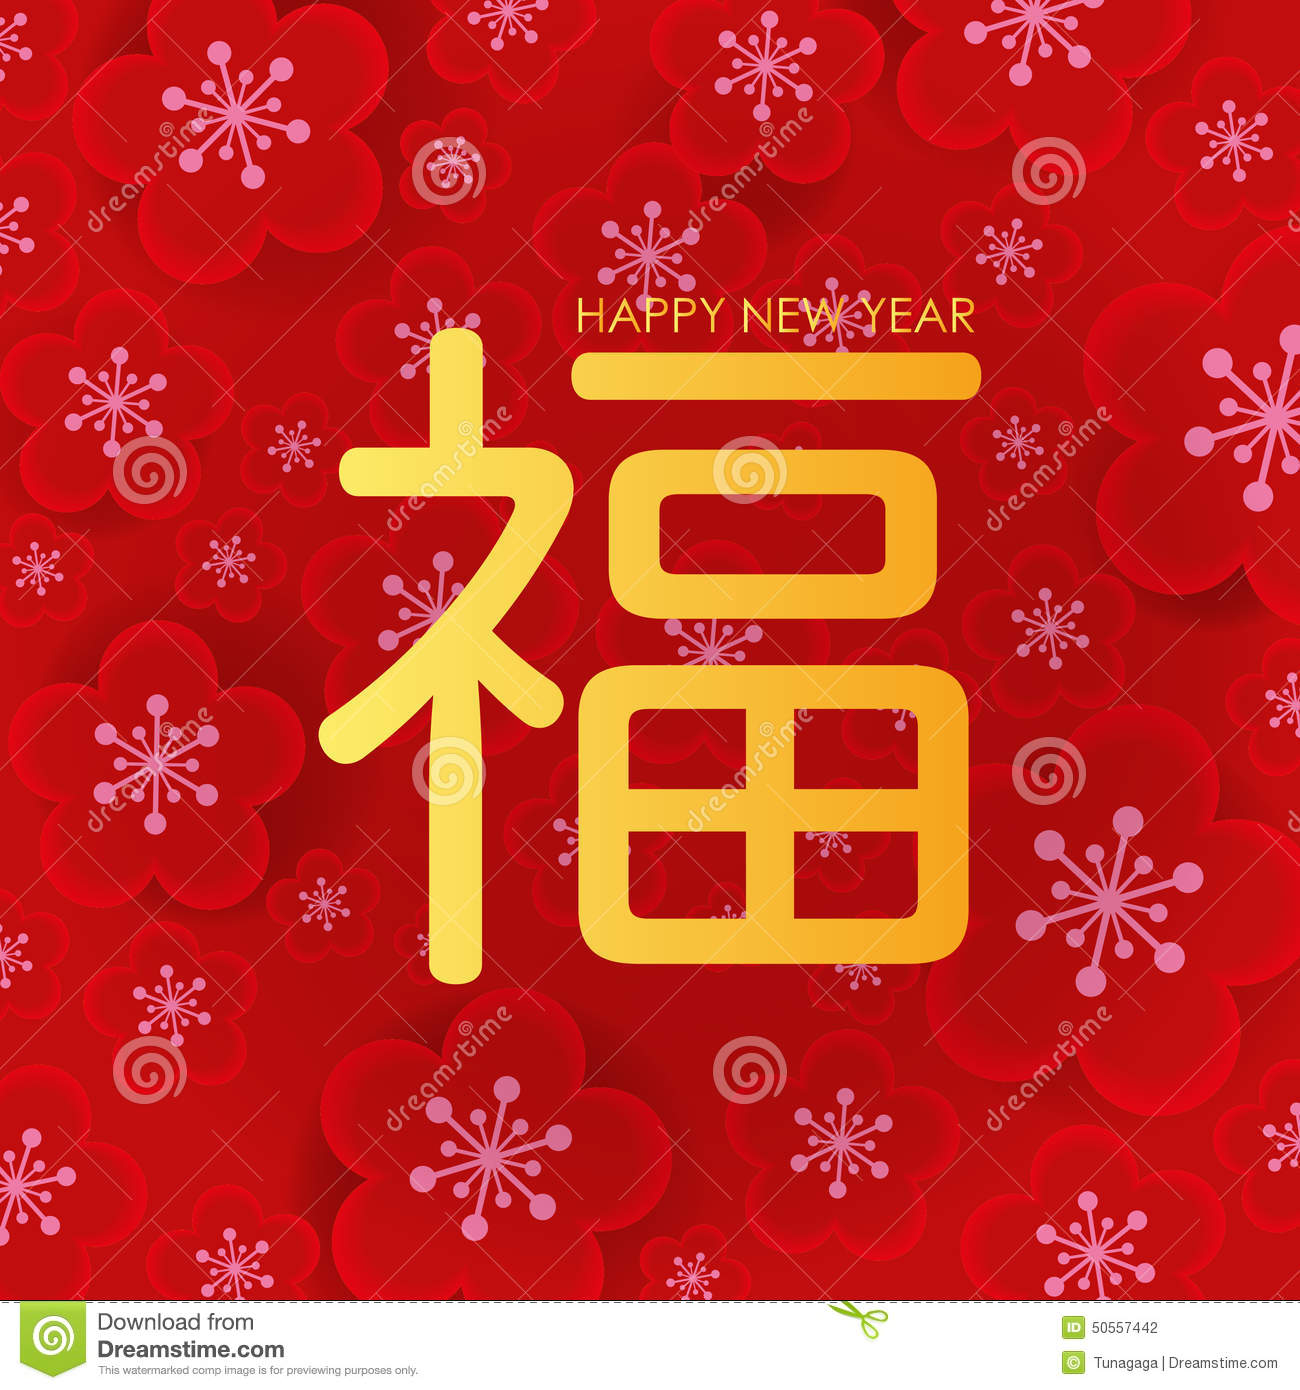 Chinese new year greeting card design stock vector illustration chinese new year greeting card design m4hsunfo